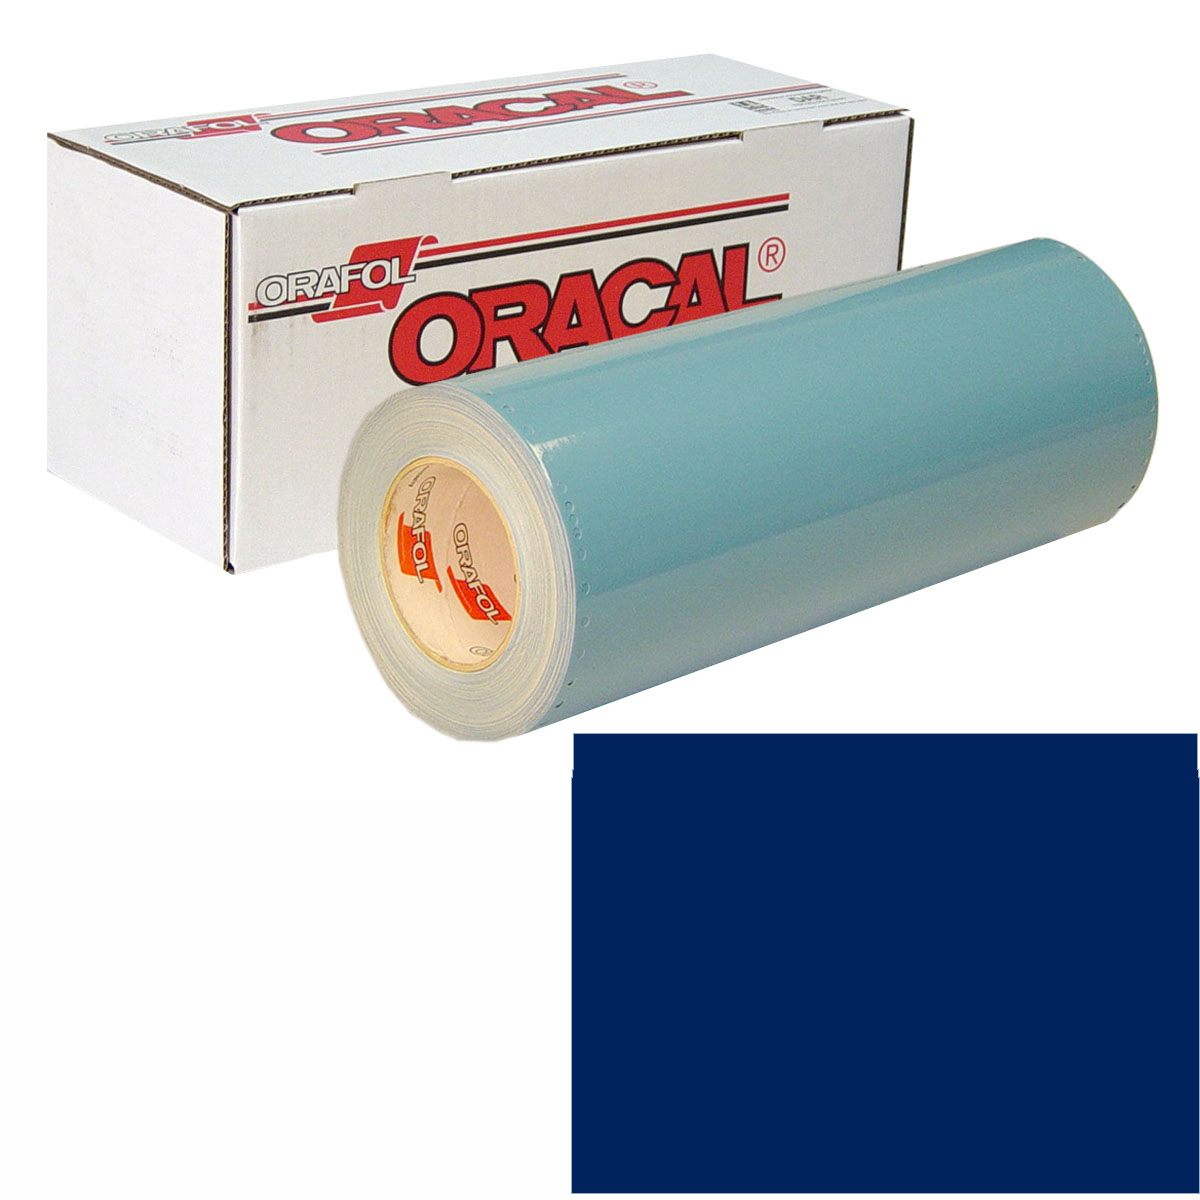 ORACAL 751 Unp 24In X 50Yd 058 Ultramarine Bl